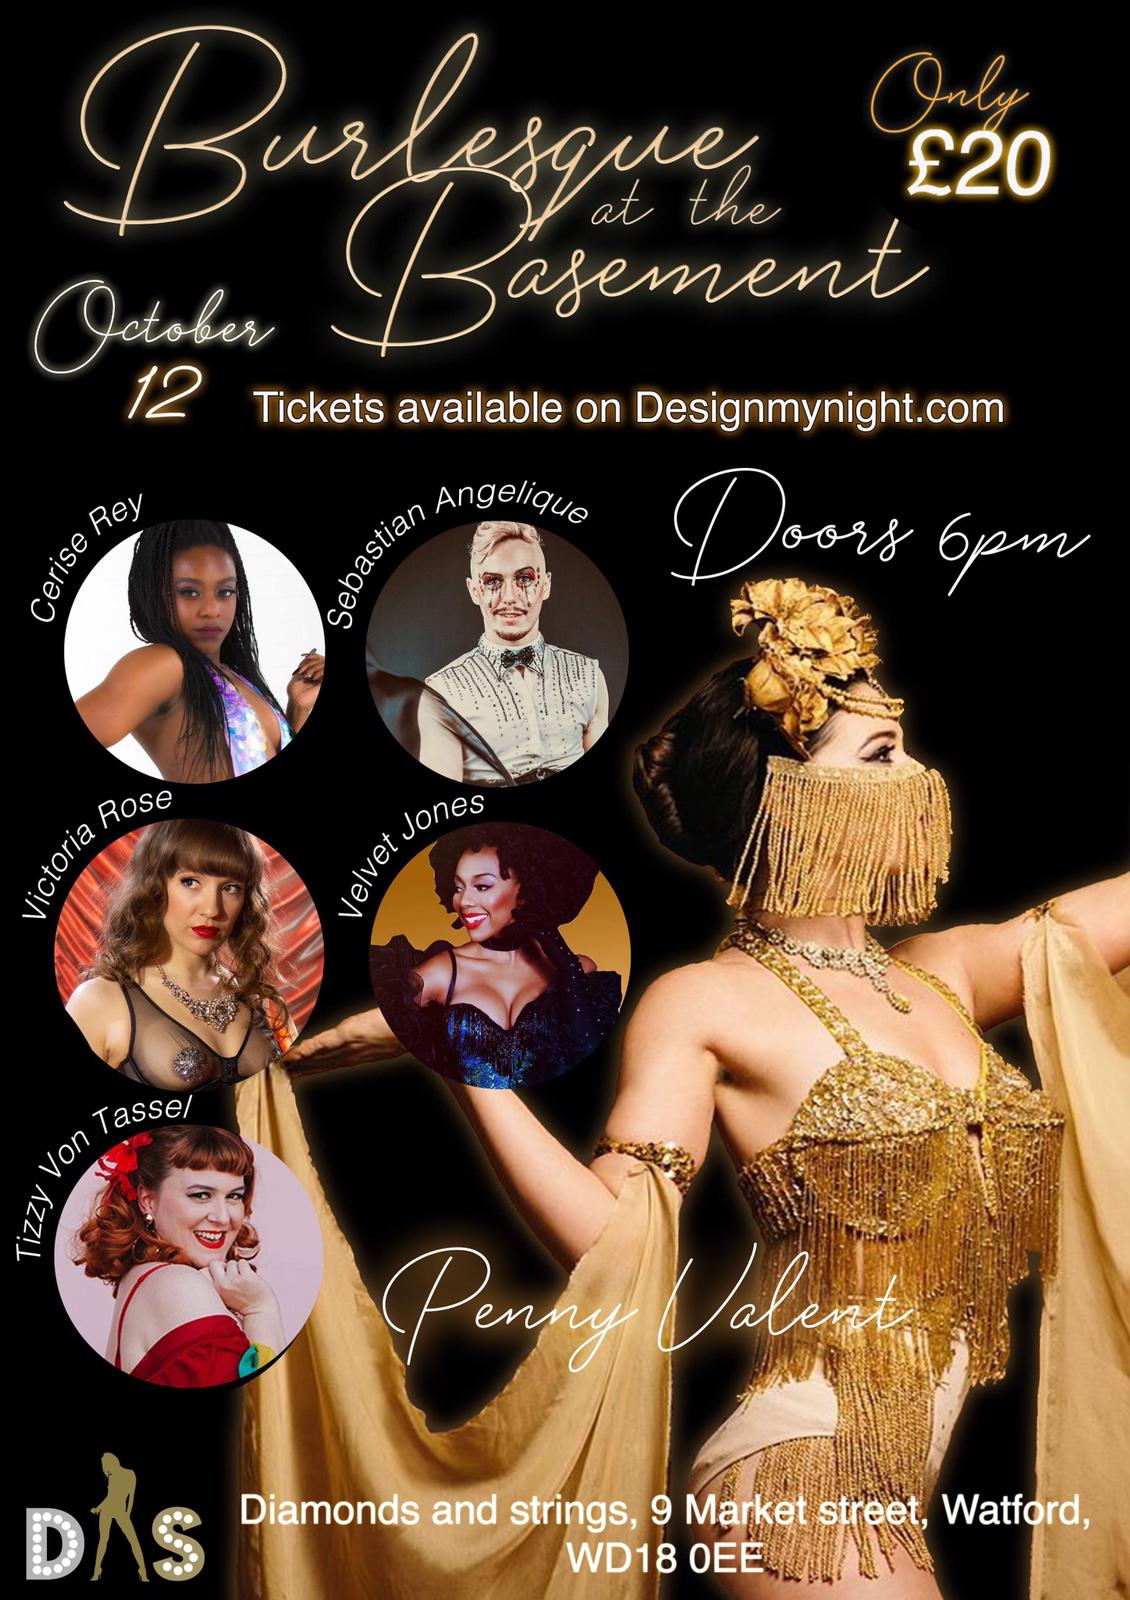 Burlesque Basement